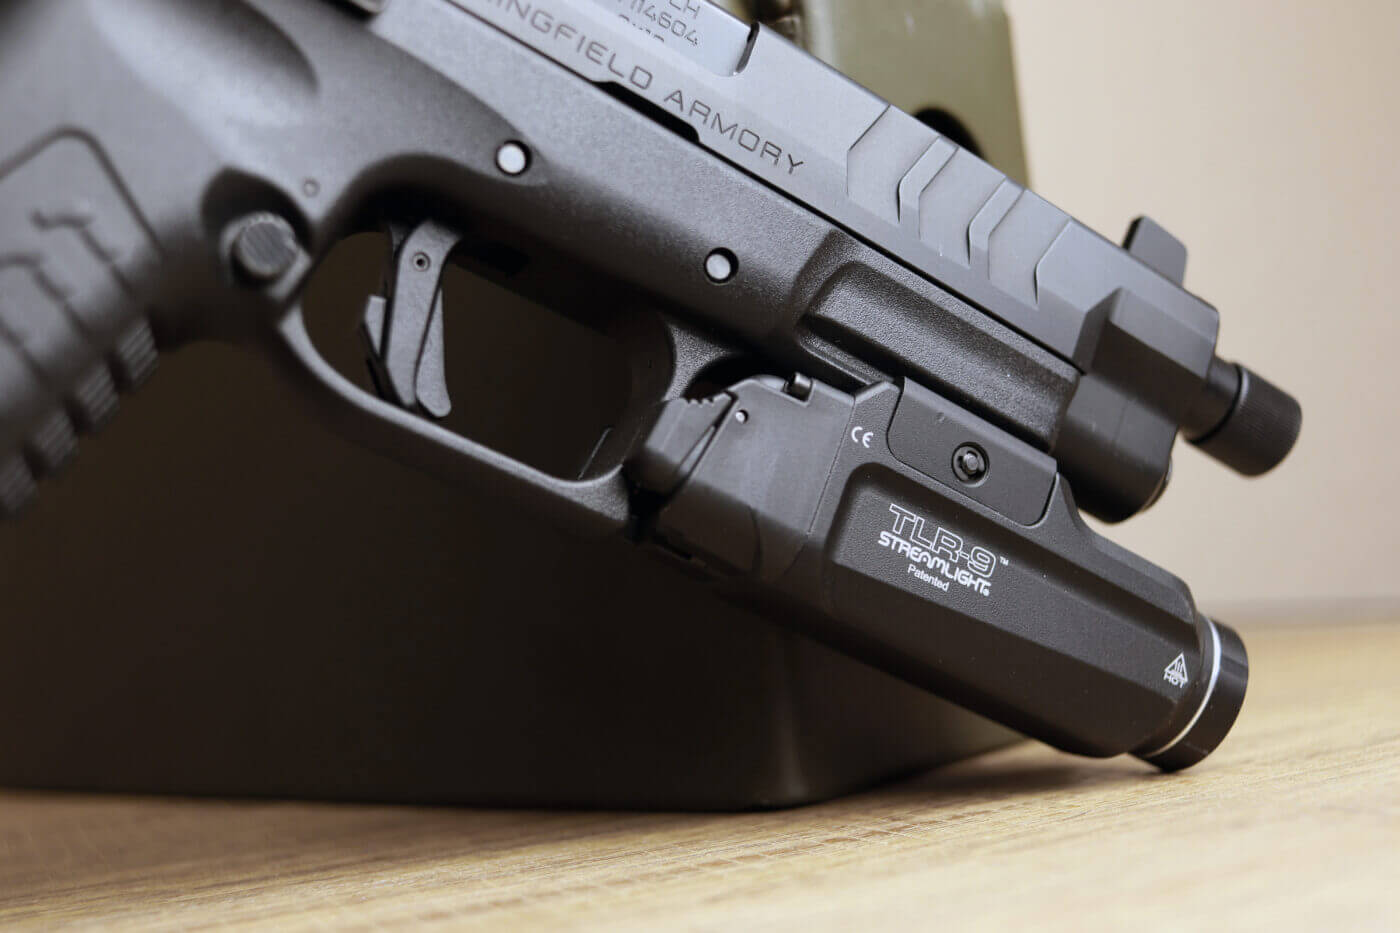 Streamlight TLR-9 on Springfield Armory pistol